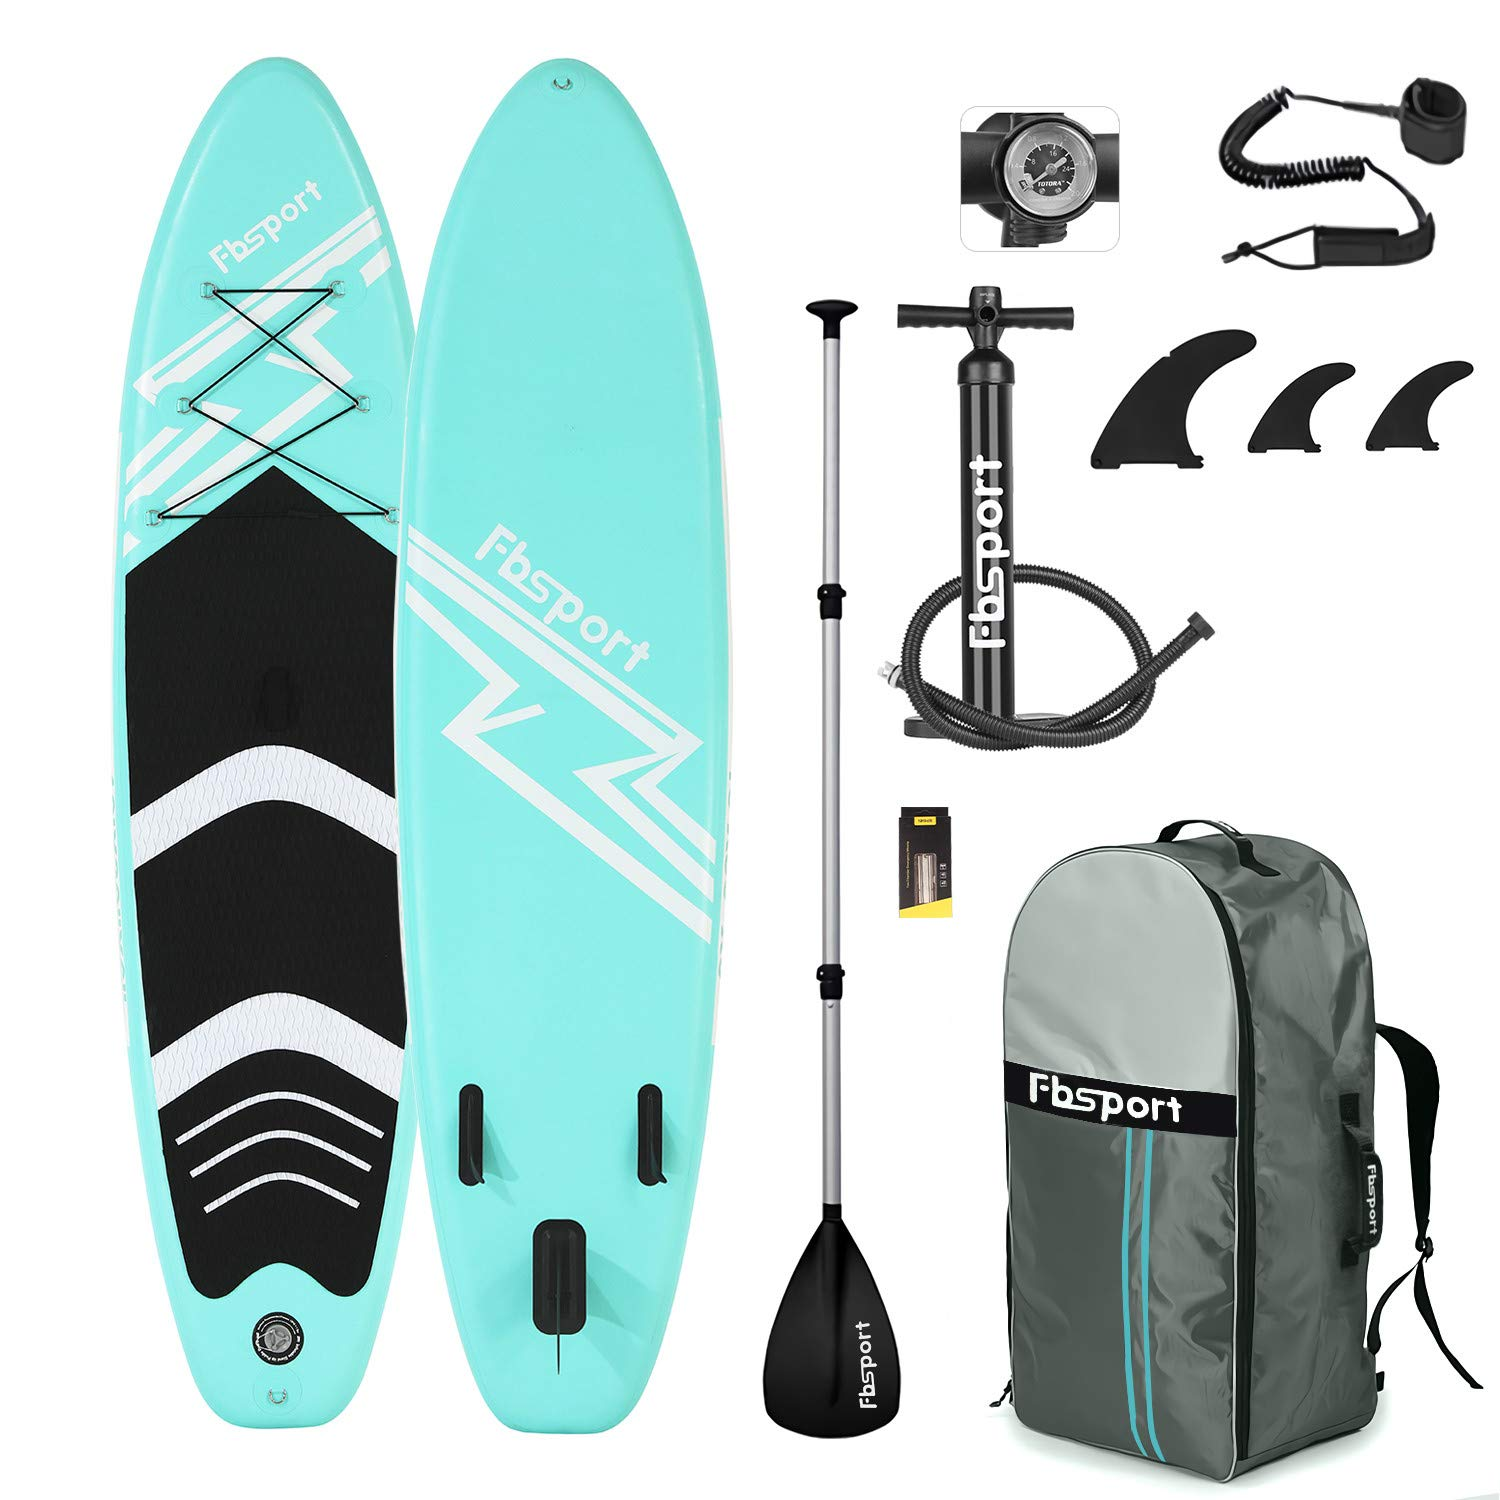 FBSPORT Sup Hinchable, 15 cm de Espesor Tabla de Surf Sup Paddleboard, Tabla Inflable de Paddle Surf, Set de Sup con Tabla y Accesorios